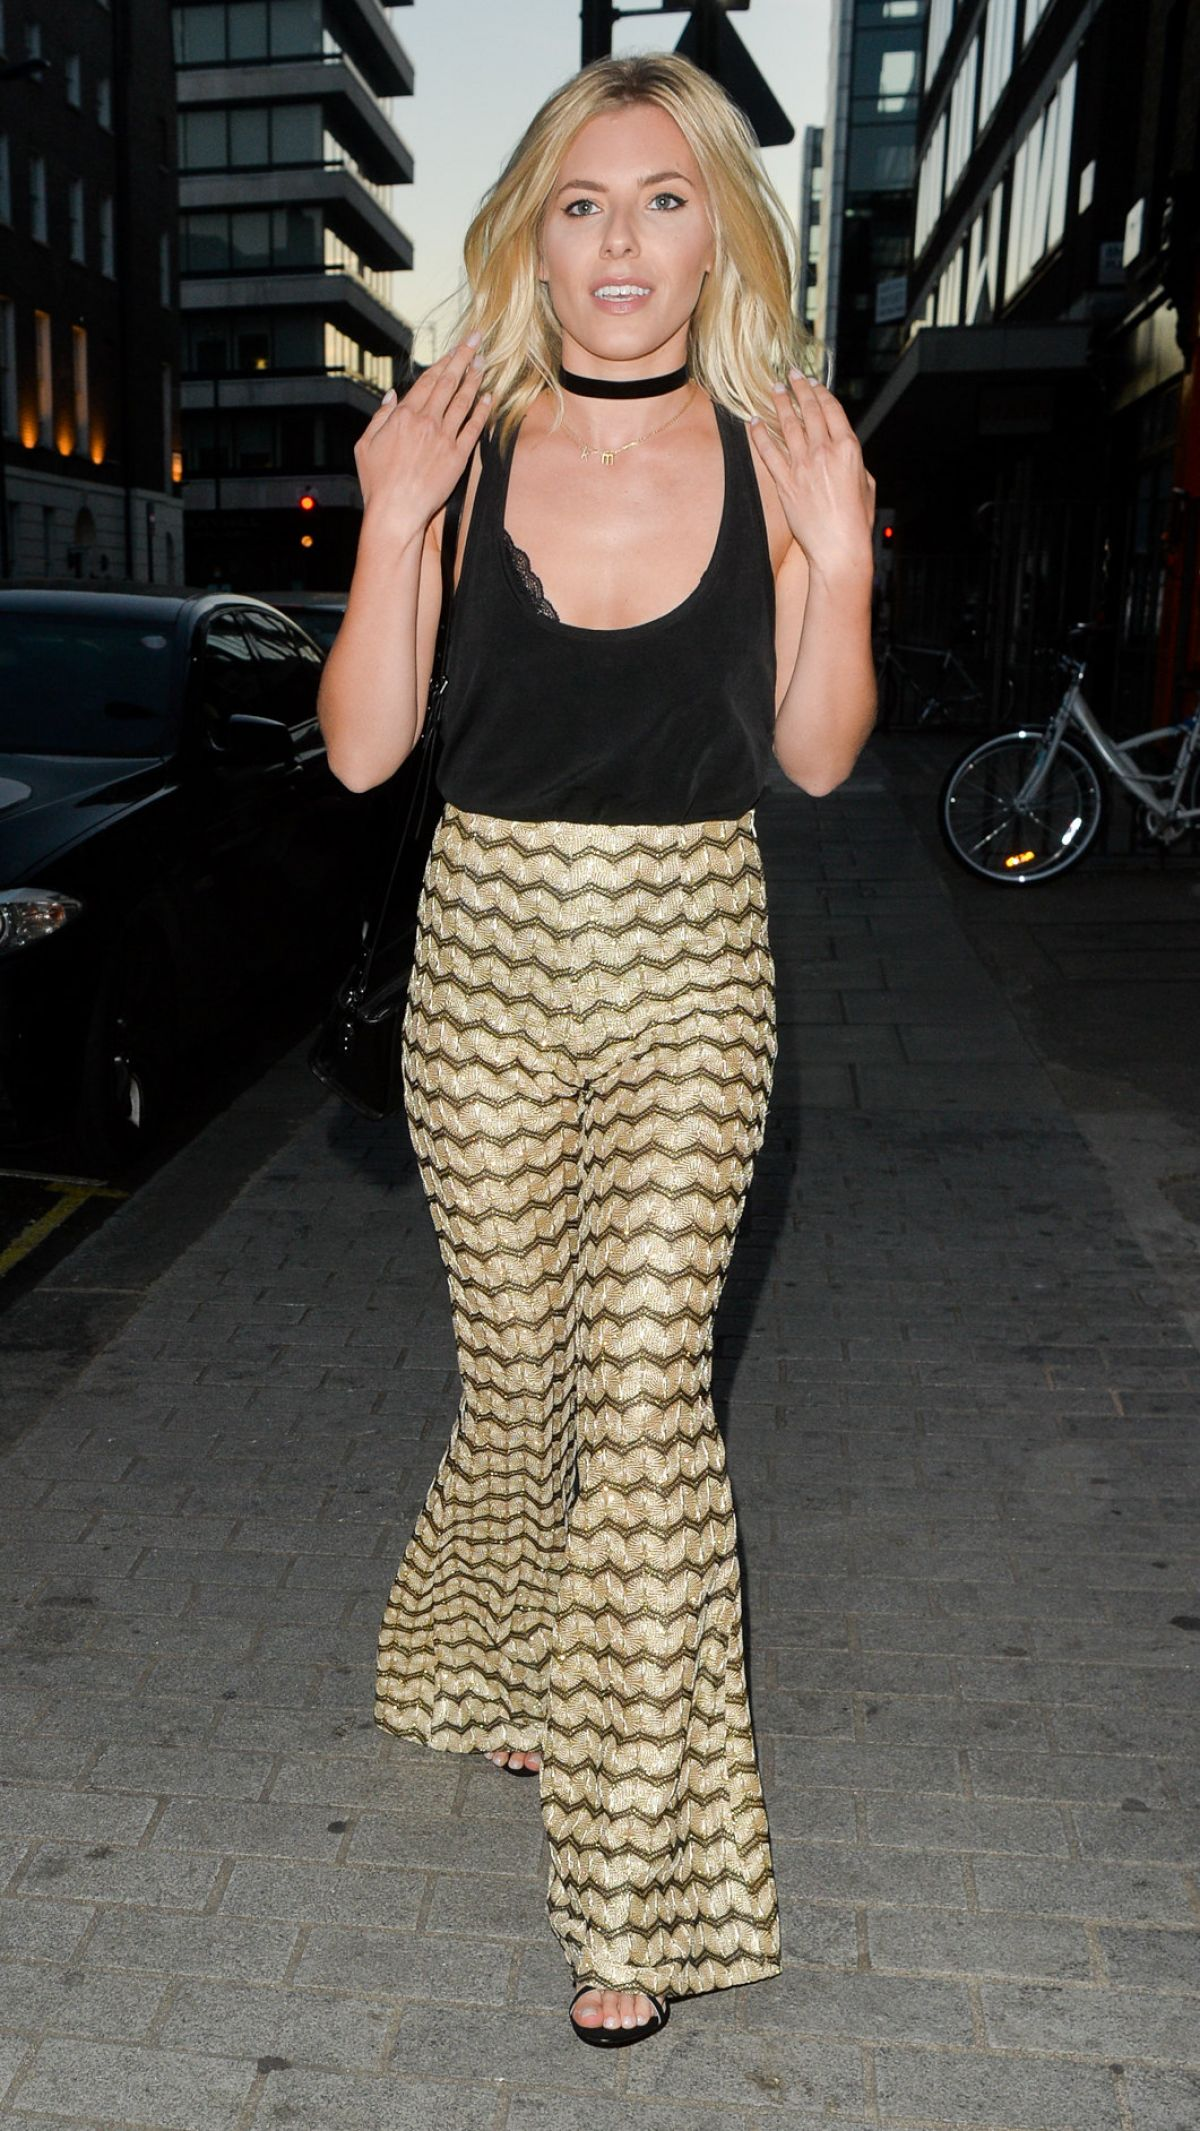 MOLLIE KING at Firehouse Restaurant in London 08/15/2016